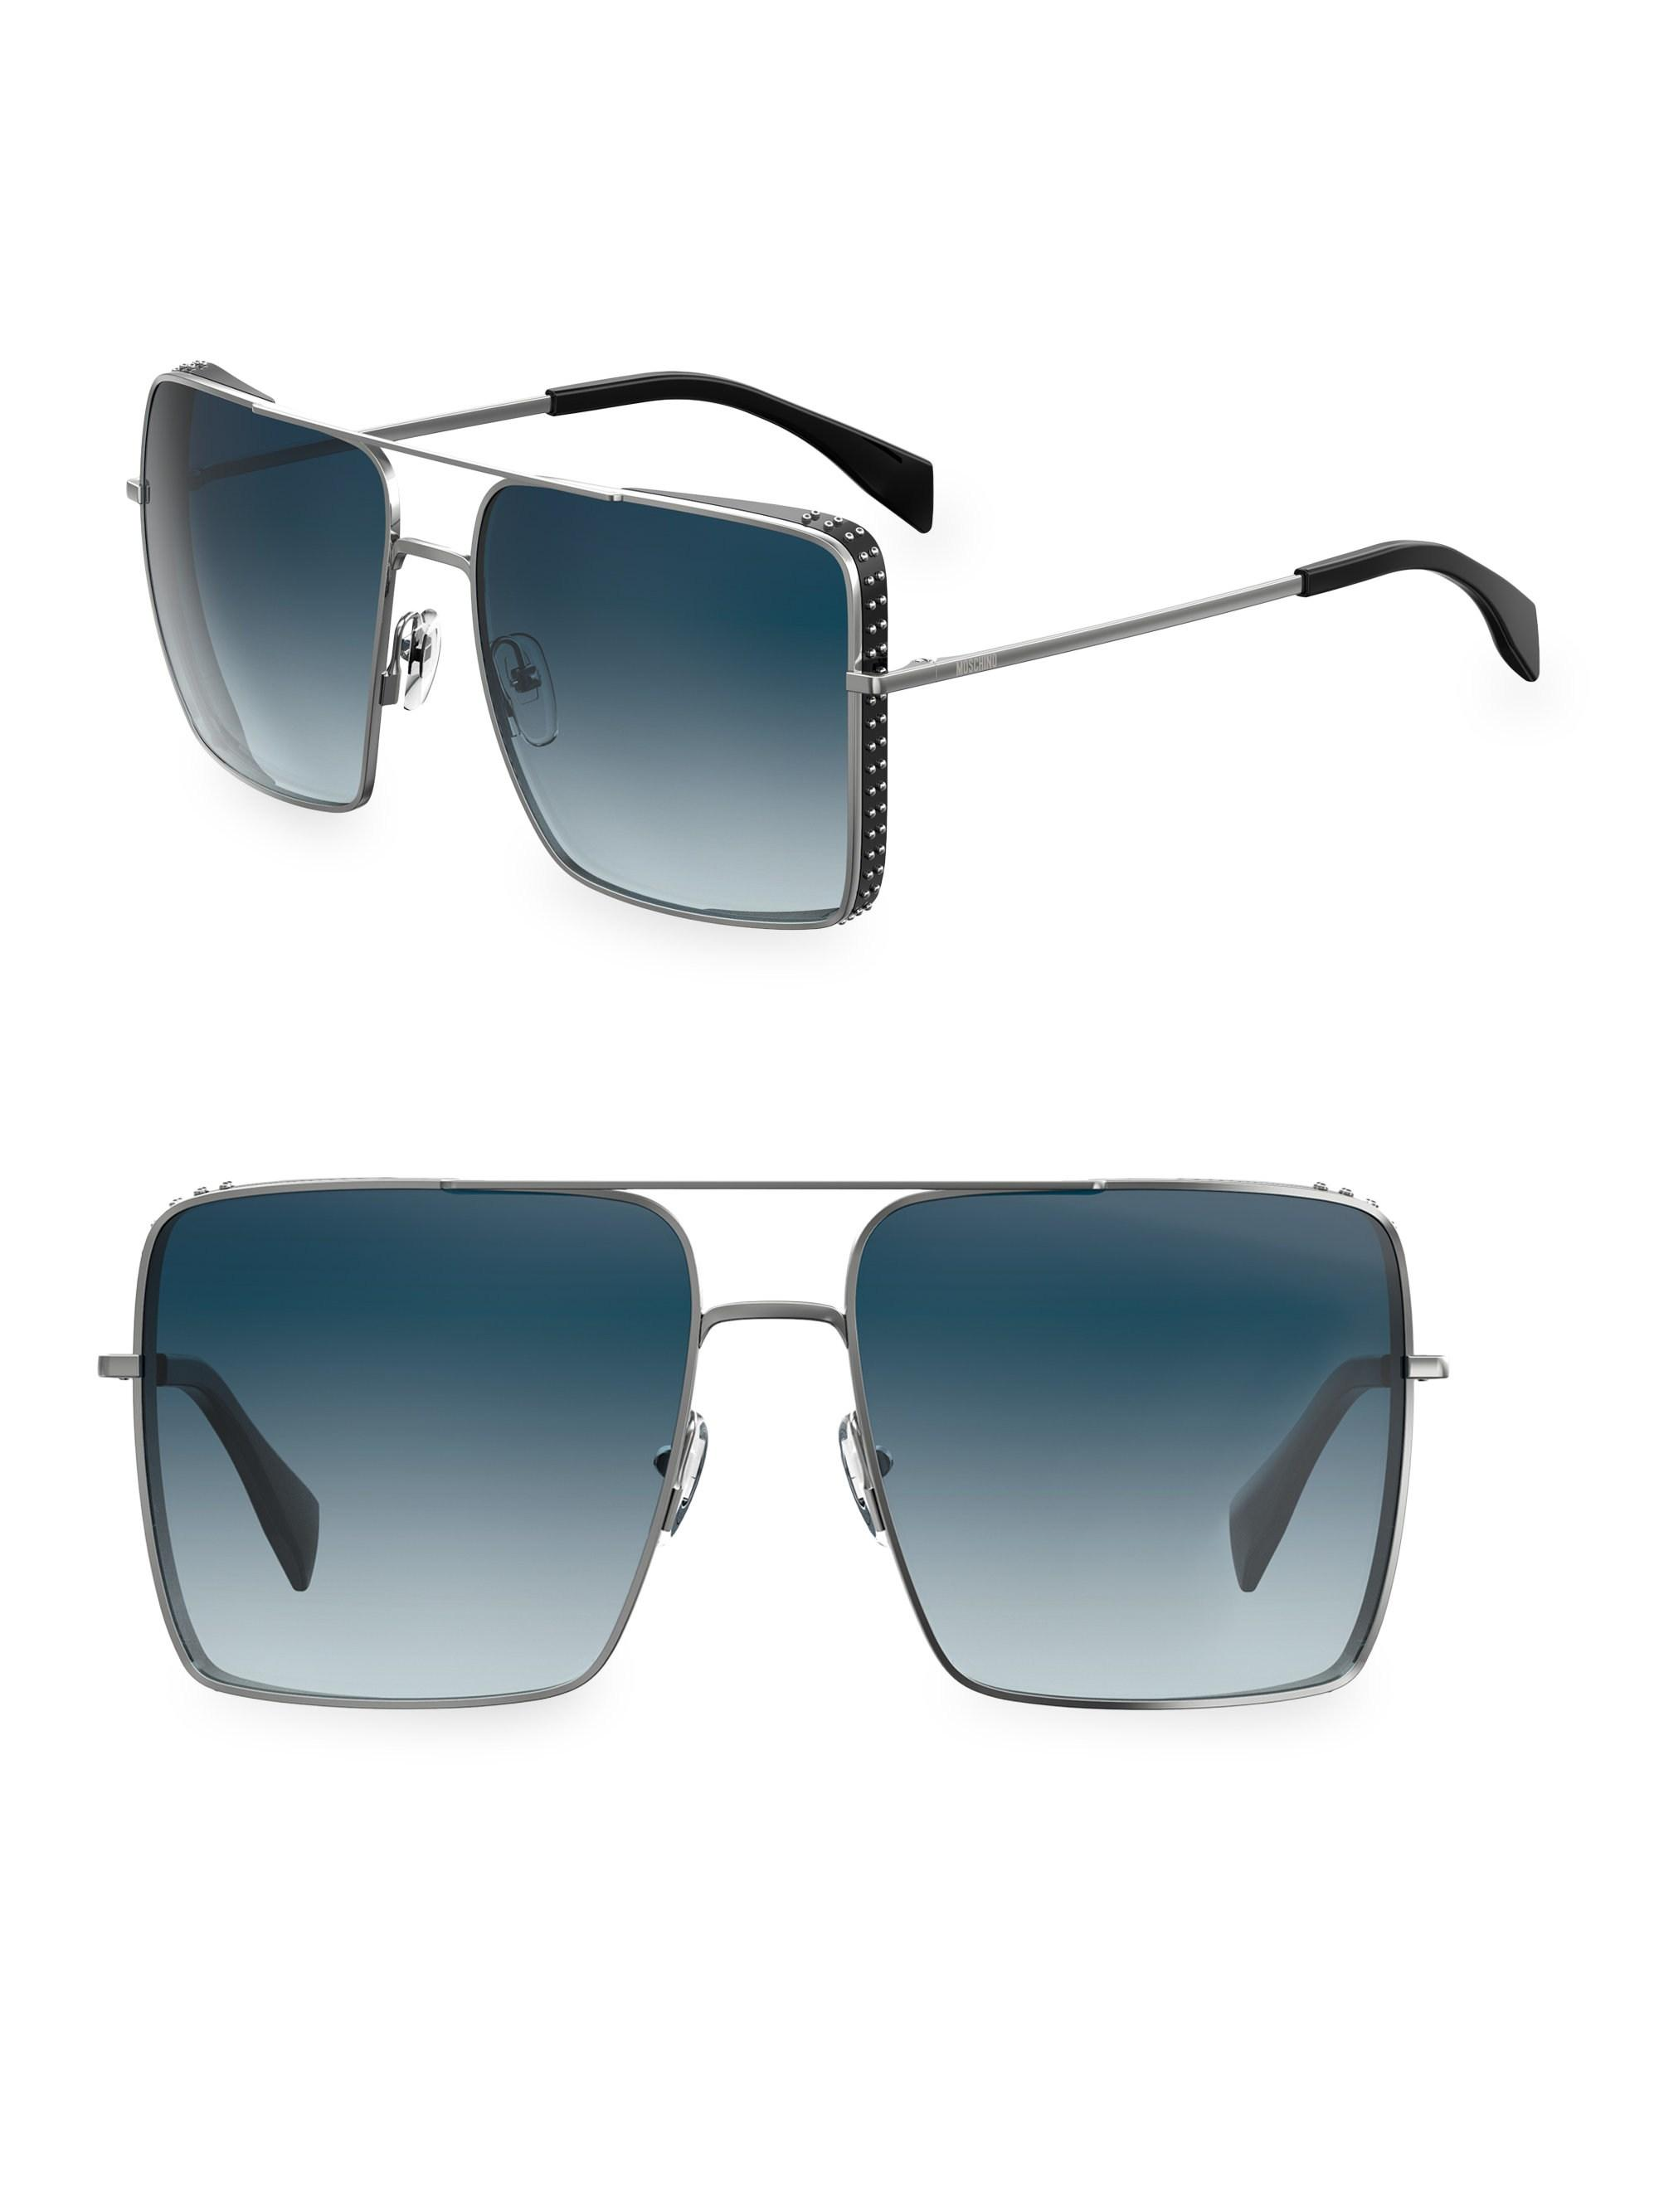 b49bd41637f77 Moschino 59mm Oversized Square Sunglasses in Blue for Men - Lyst